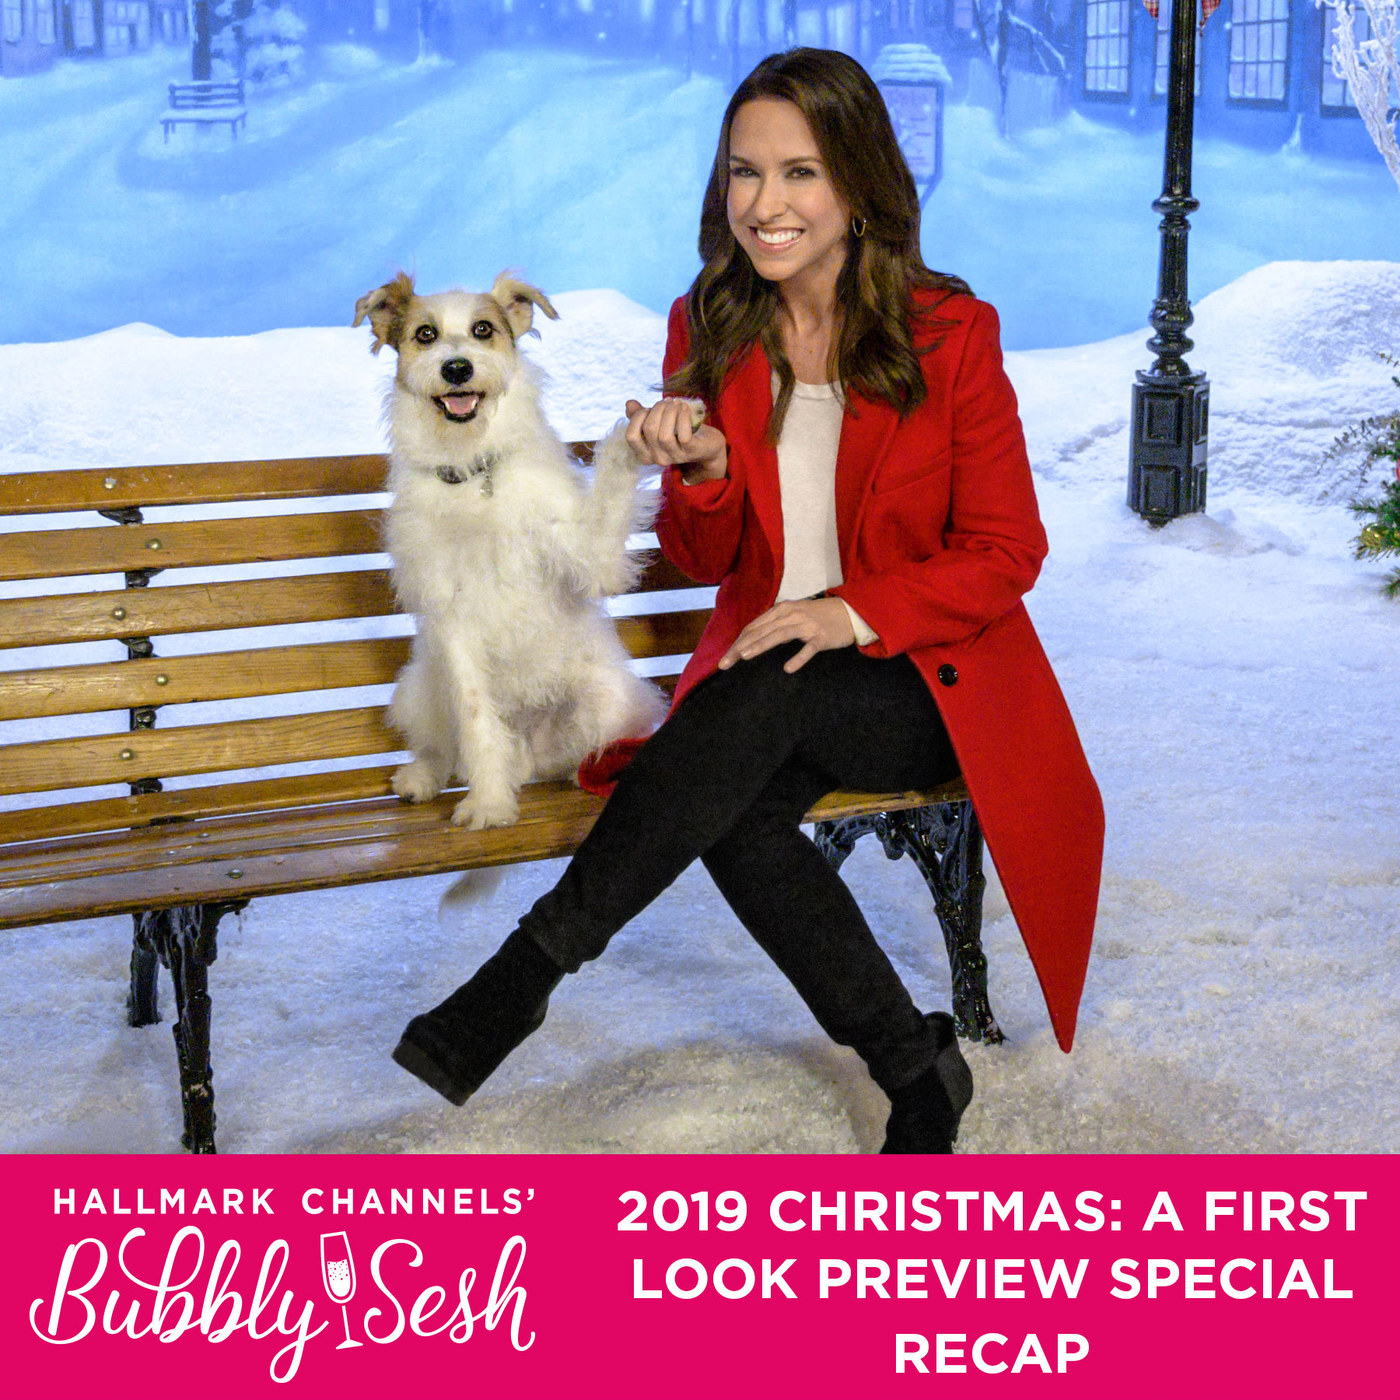 2019 Christmas: First Look Preview Special Recap | Bubbly Sesh